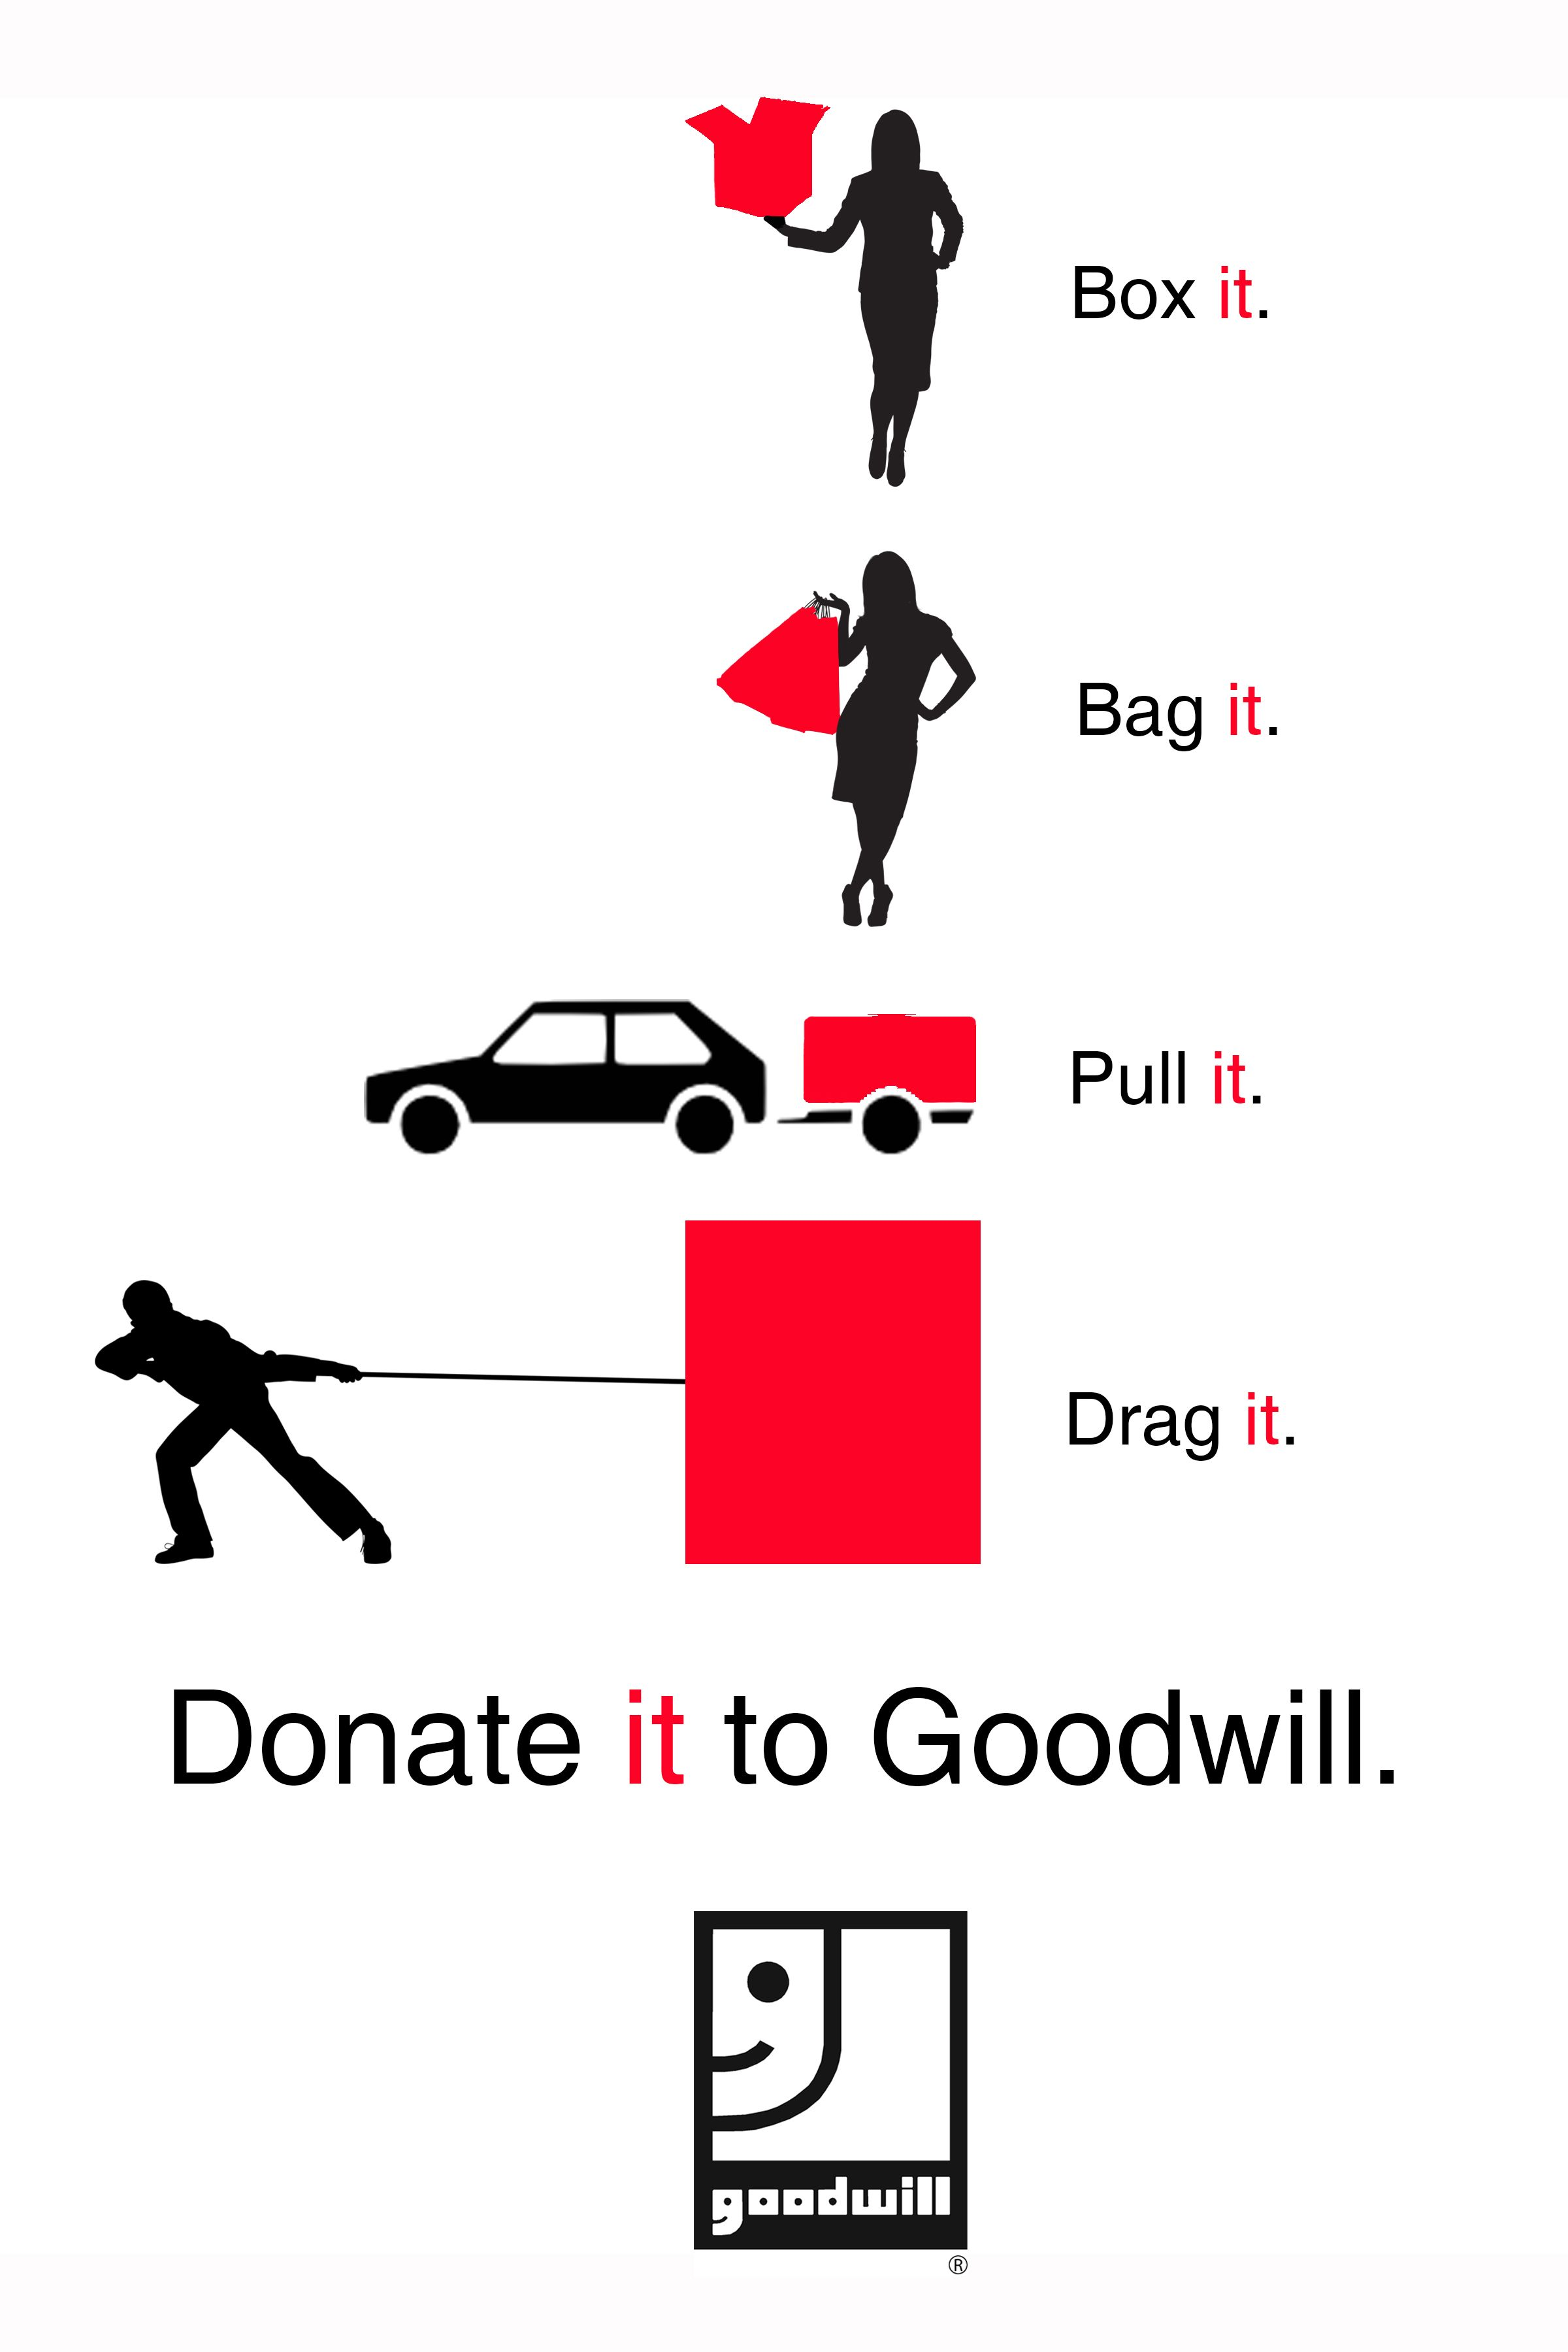 Goodwill Needs Your Donations To Support Our Mission Of Building